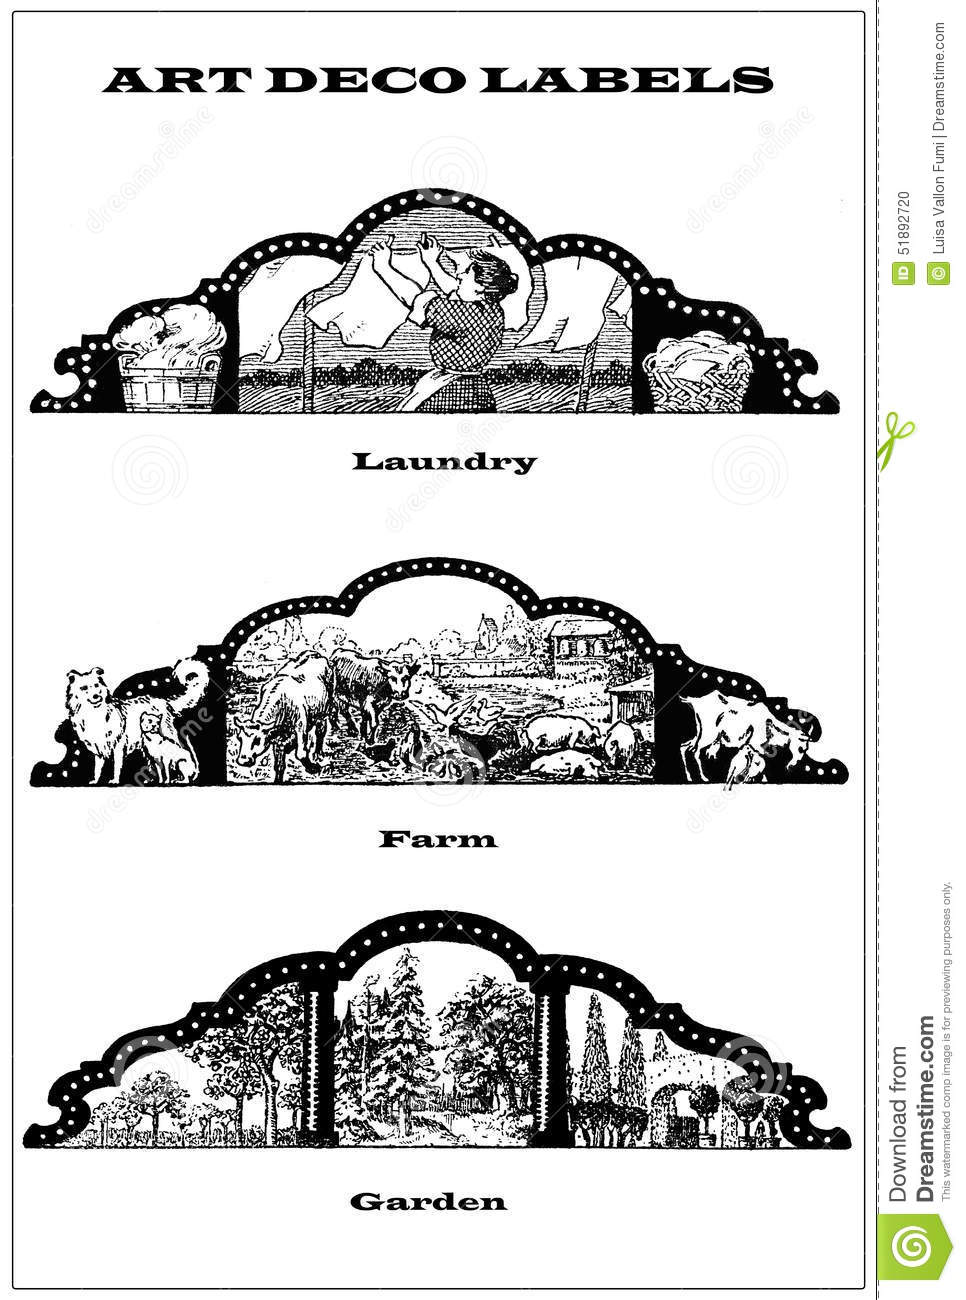 3 Collage Art Deco Labels About Laundry,gardening,farming